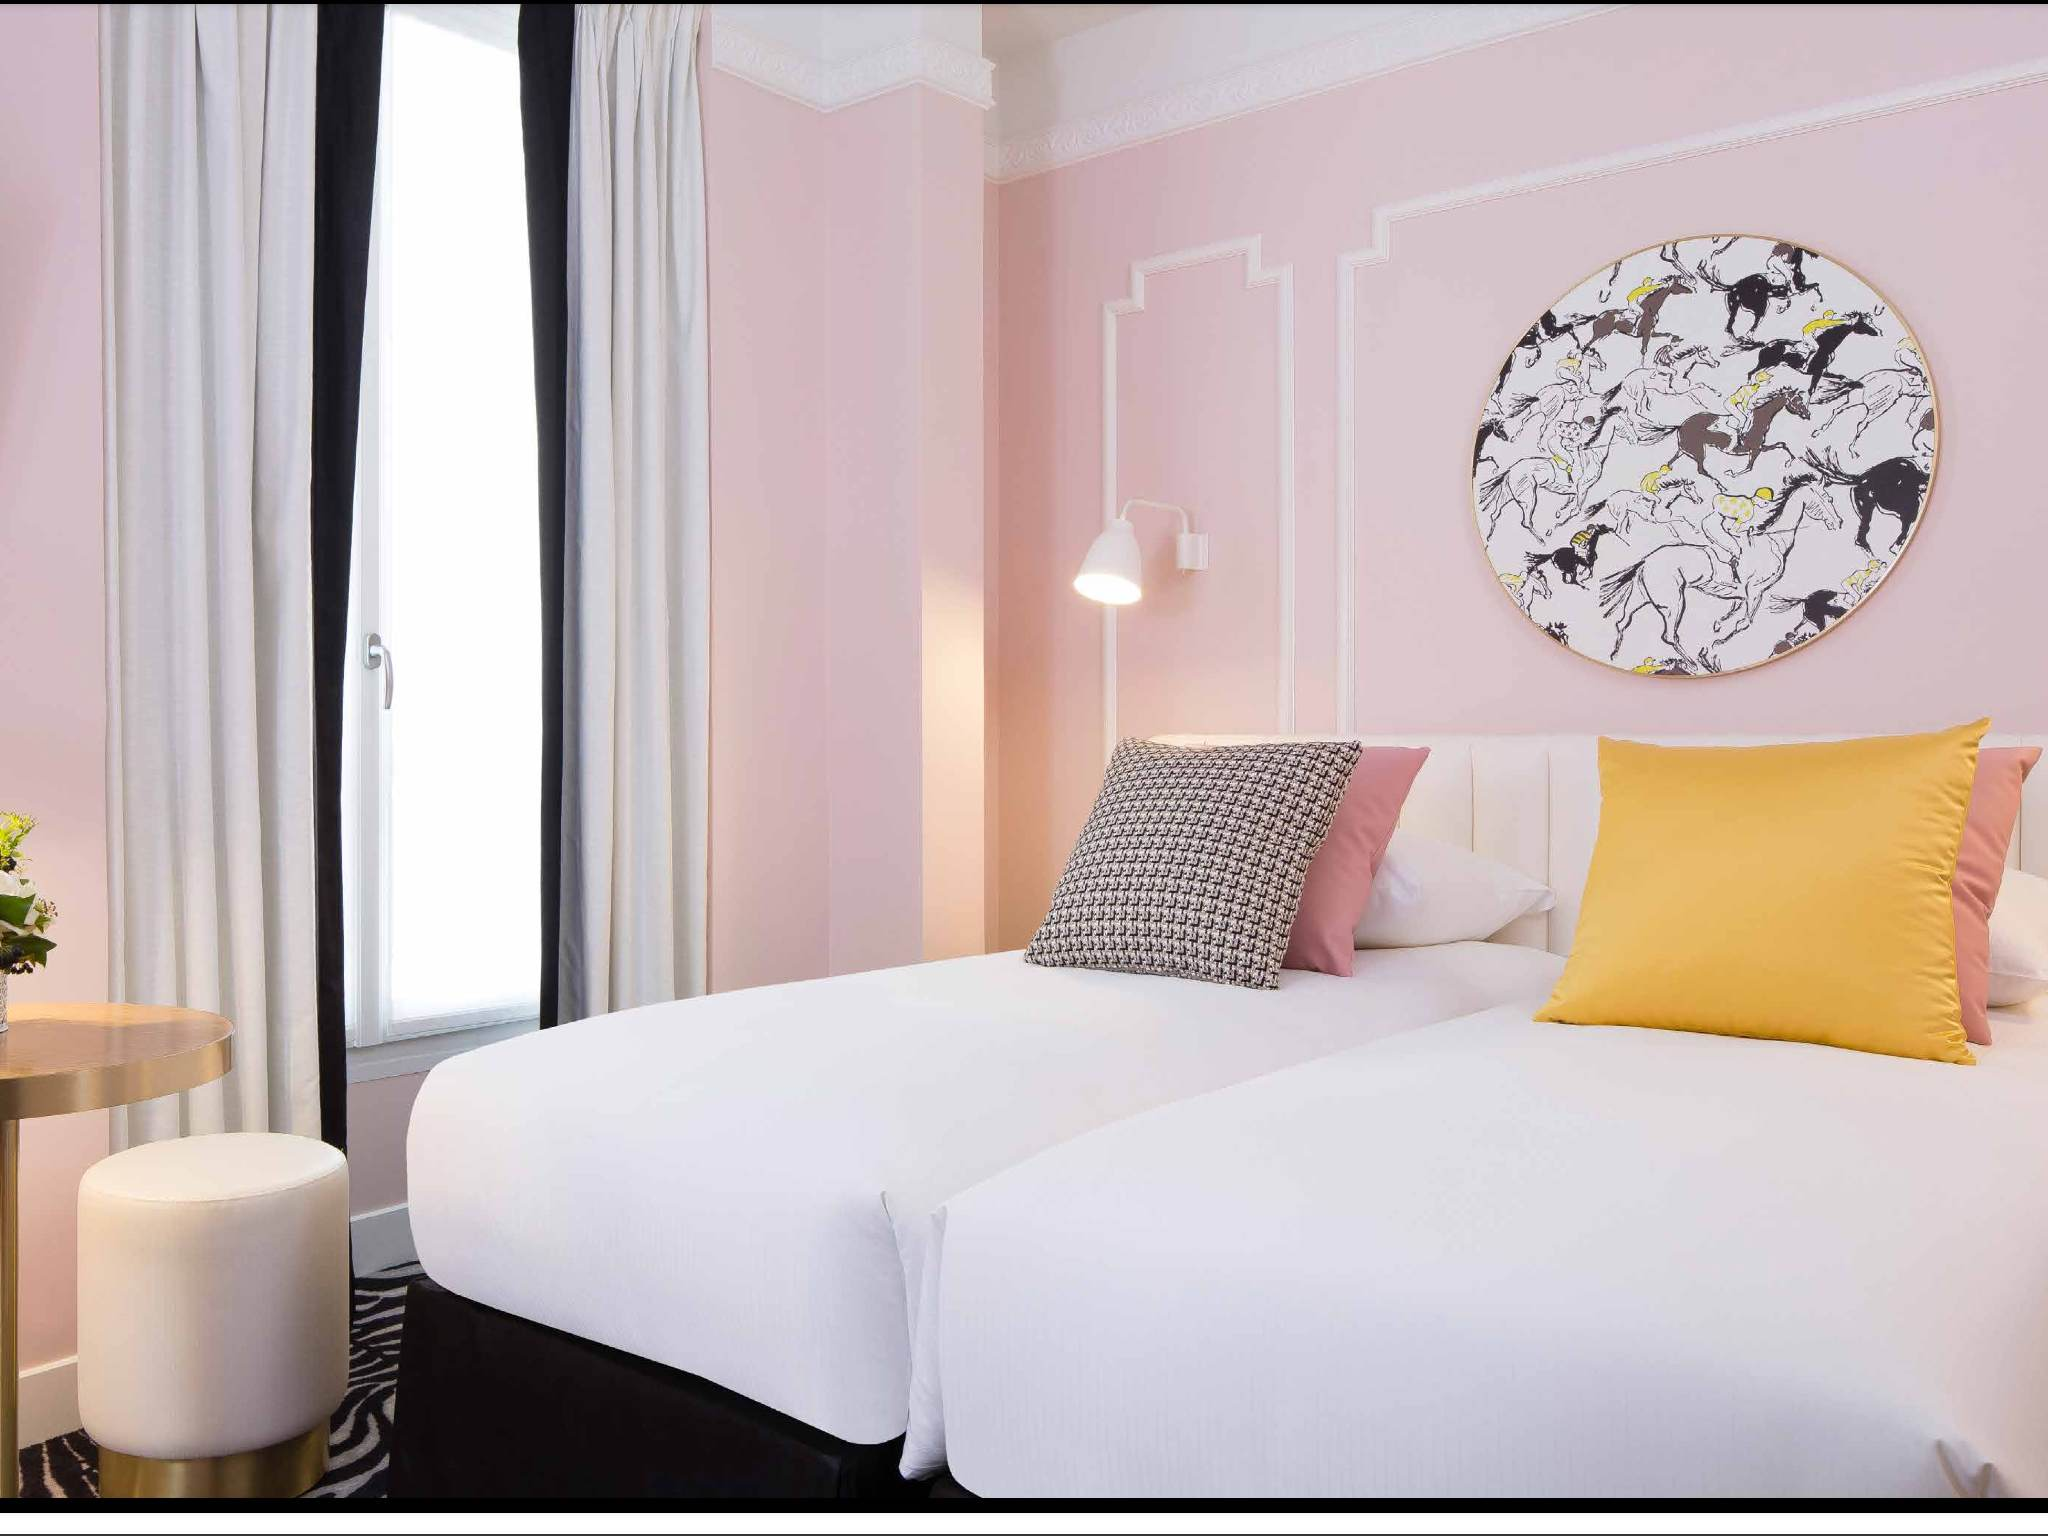 voyage une nuit de luxe l hotel pastel paris. Black Bedroom Furniture Sets. Home Design Ideas